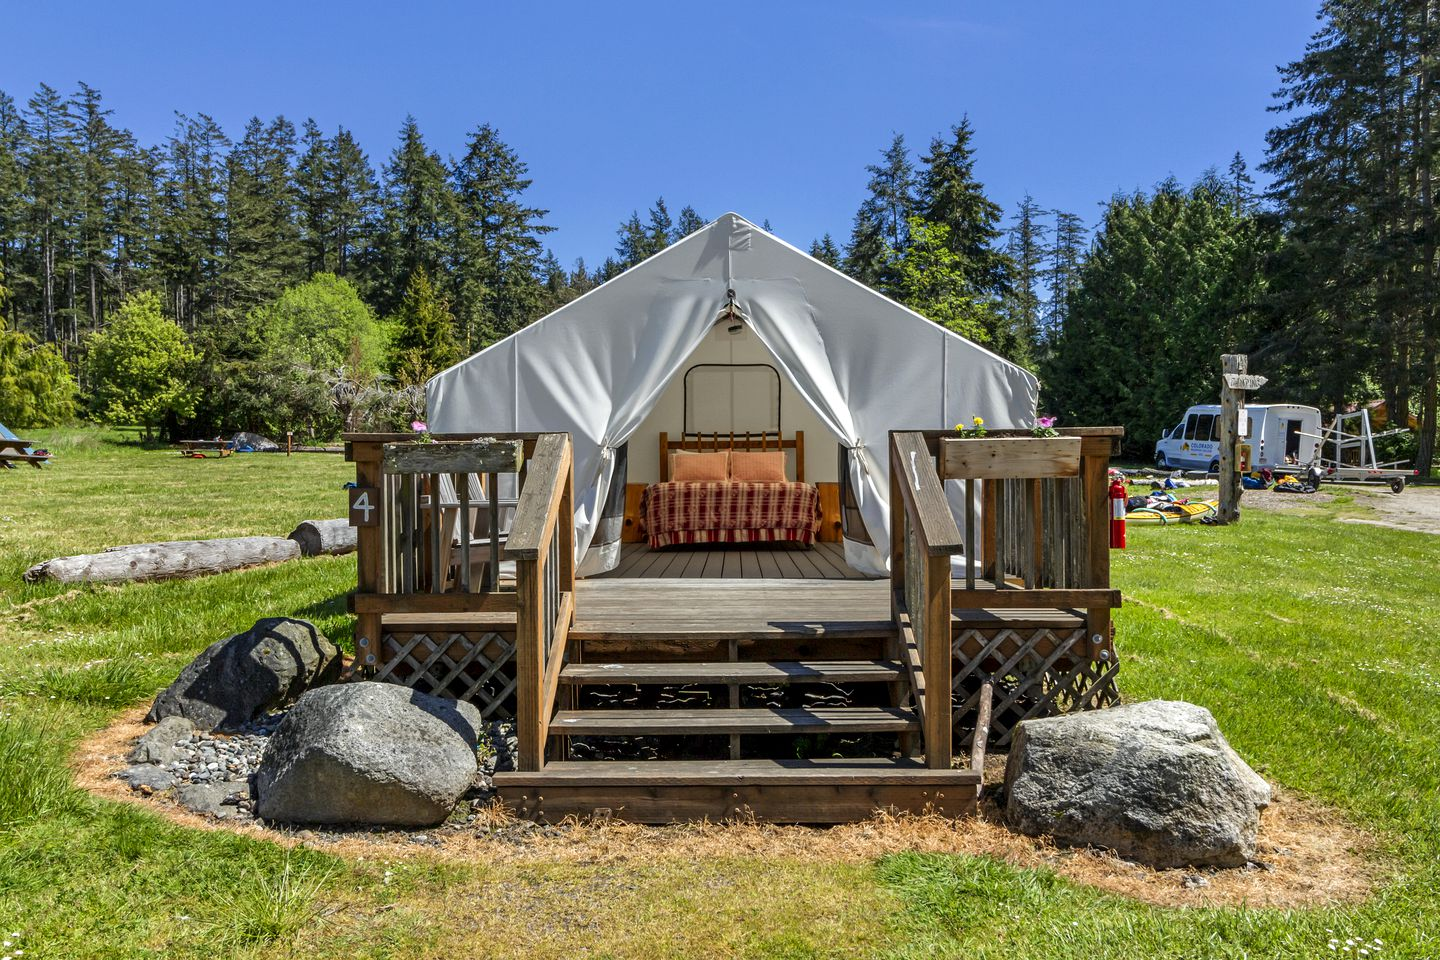 Tents (Eastsound, United States)